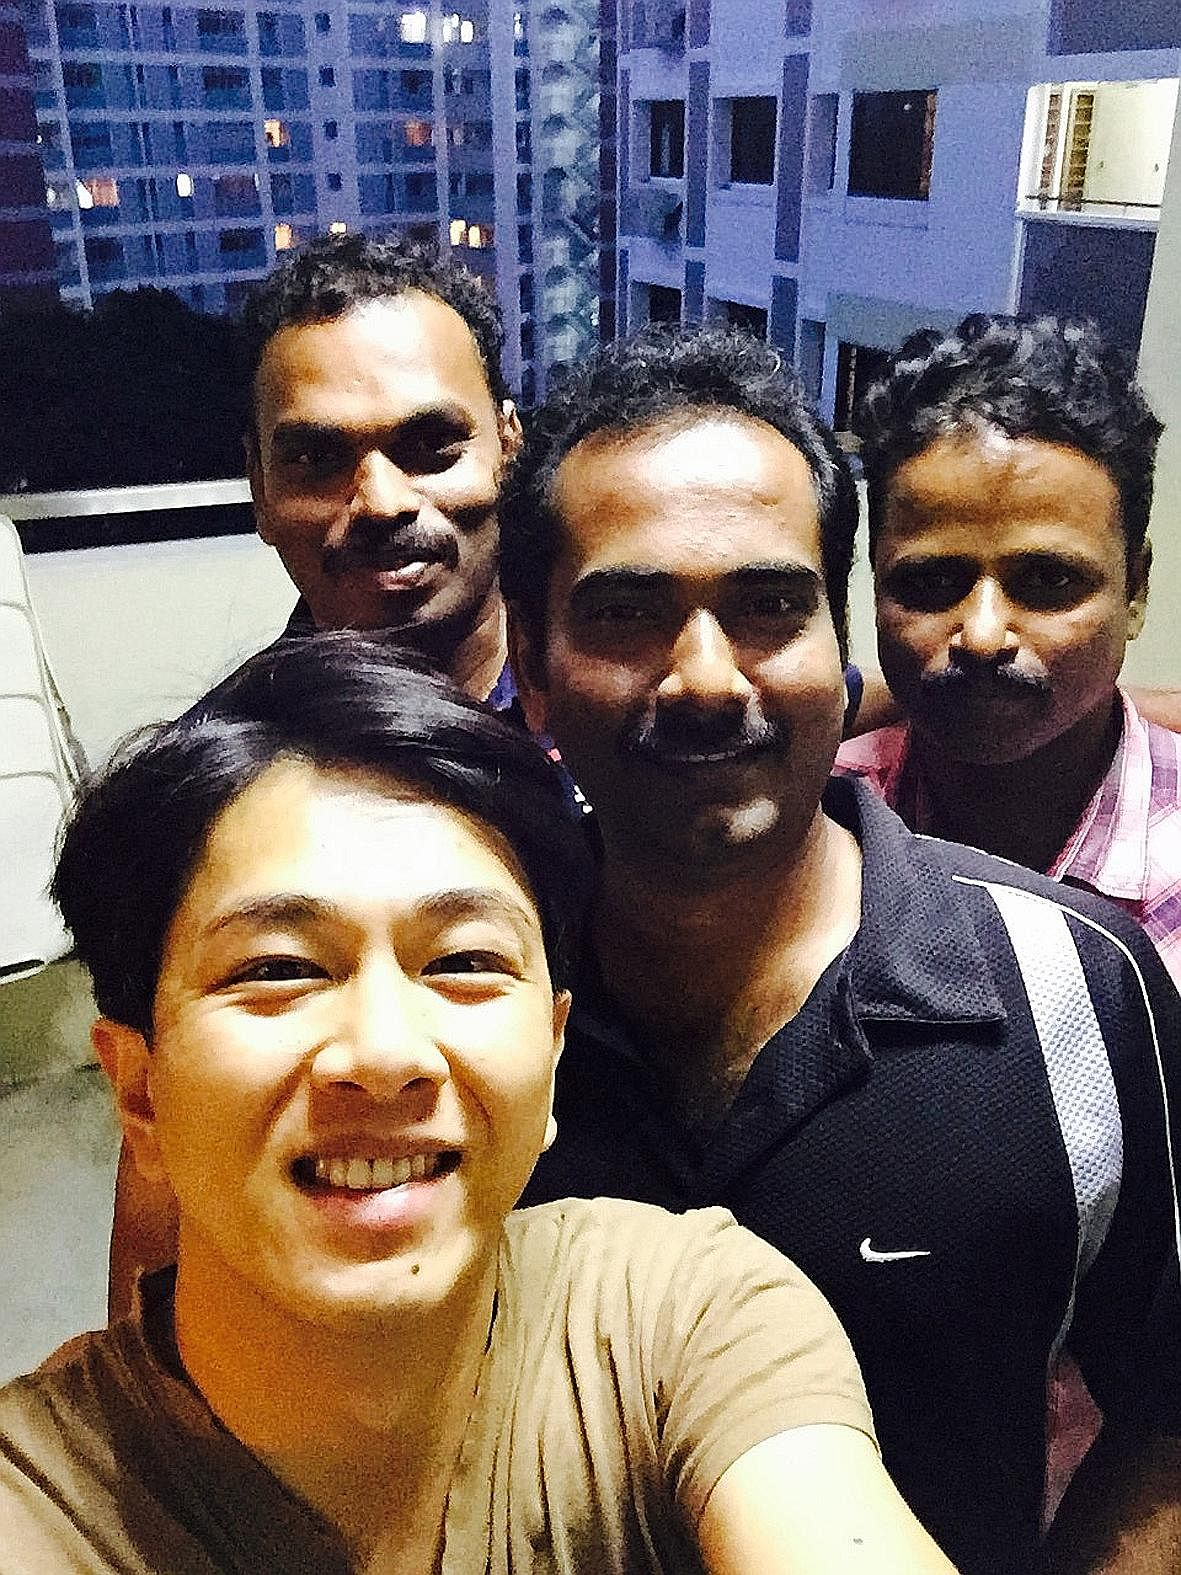 Mr Sugie Phua took a photo with the three men who returned his wallet.